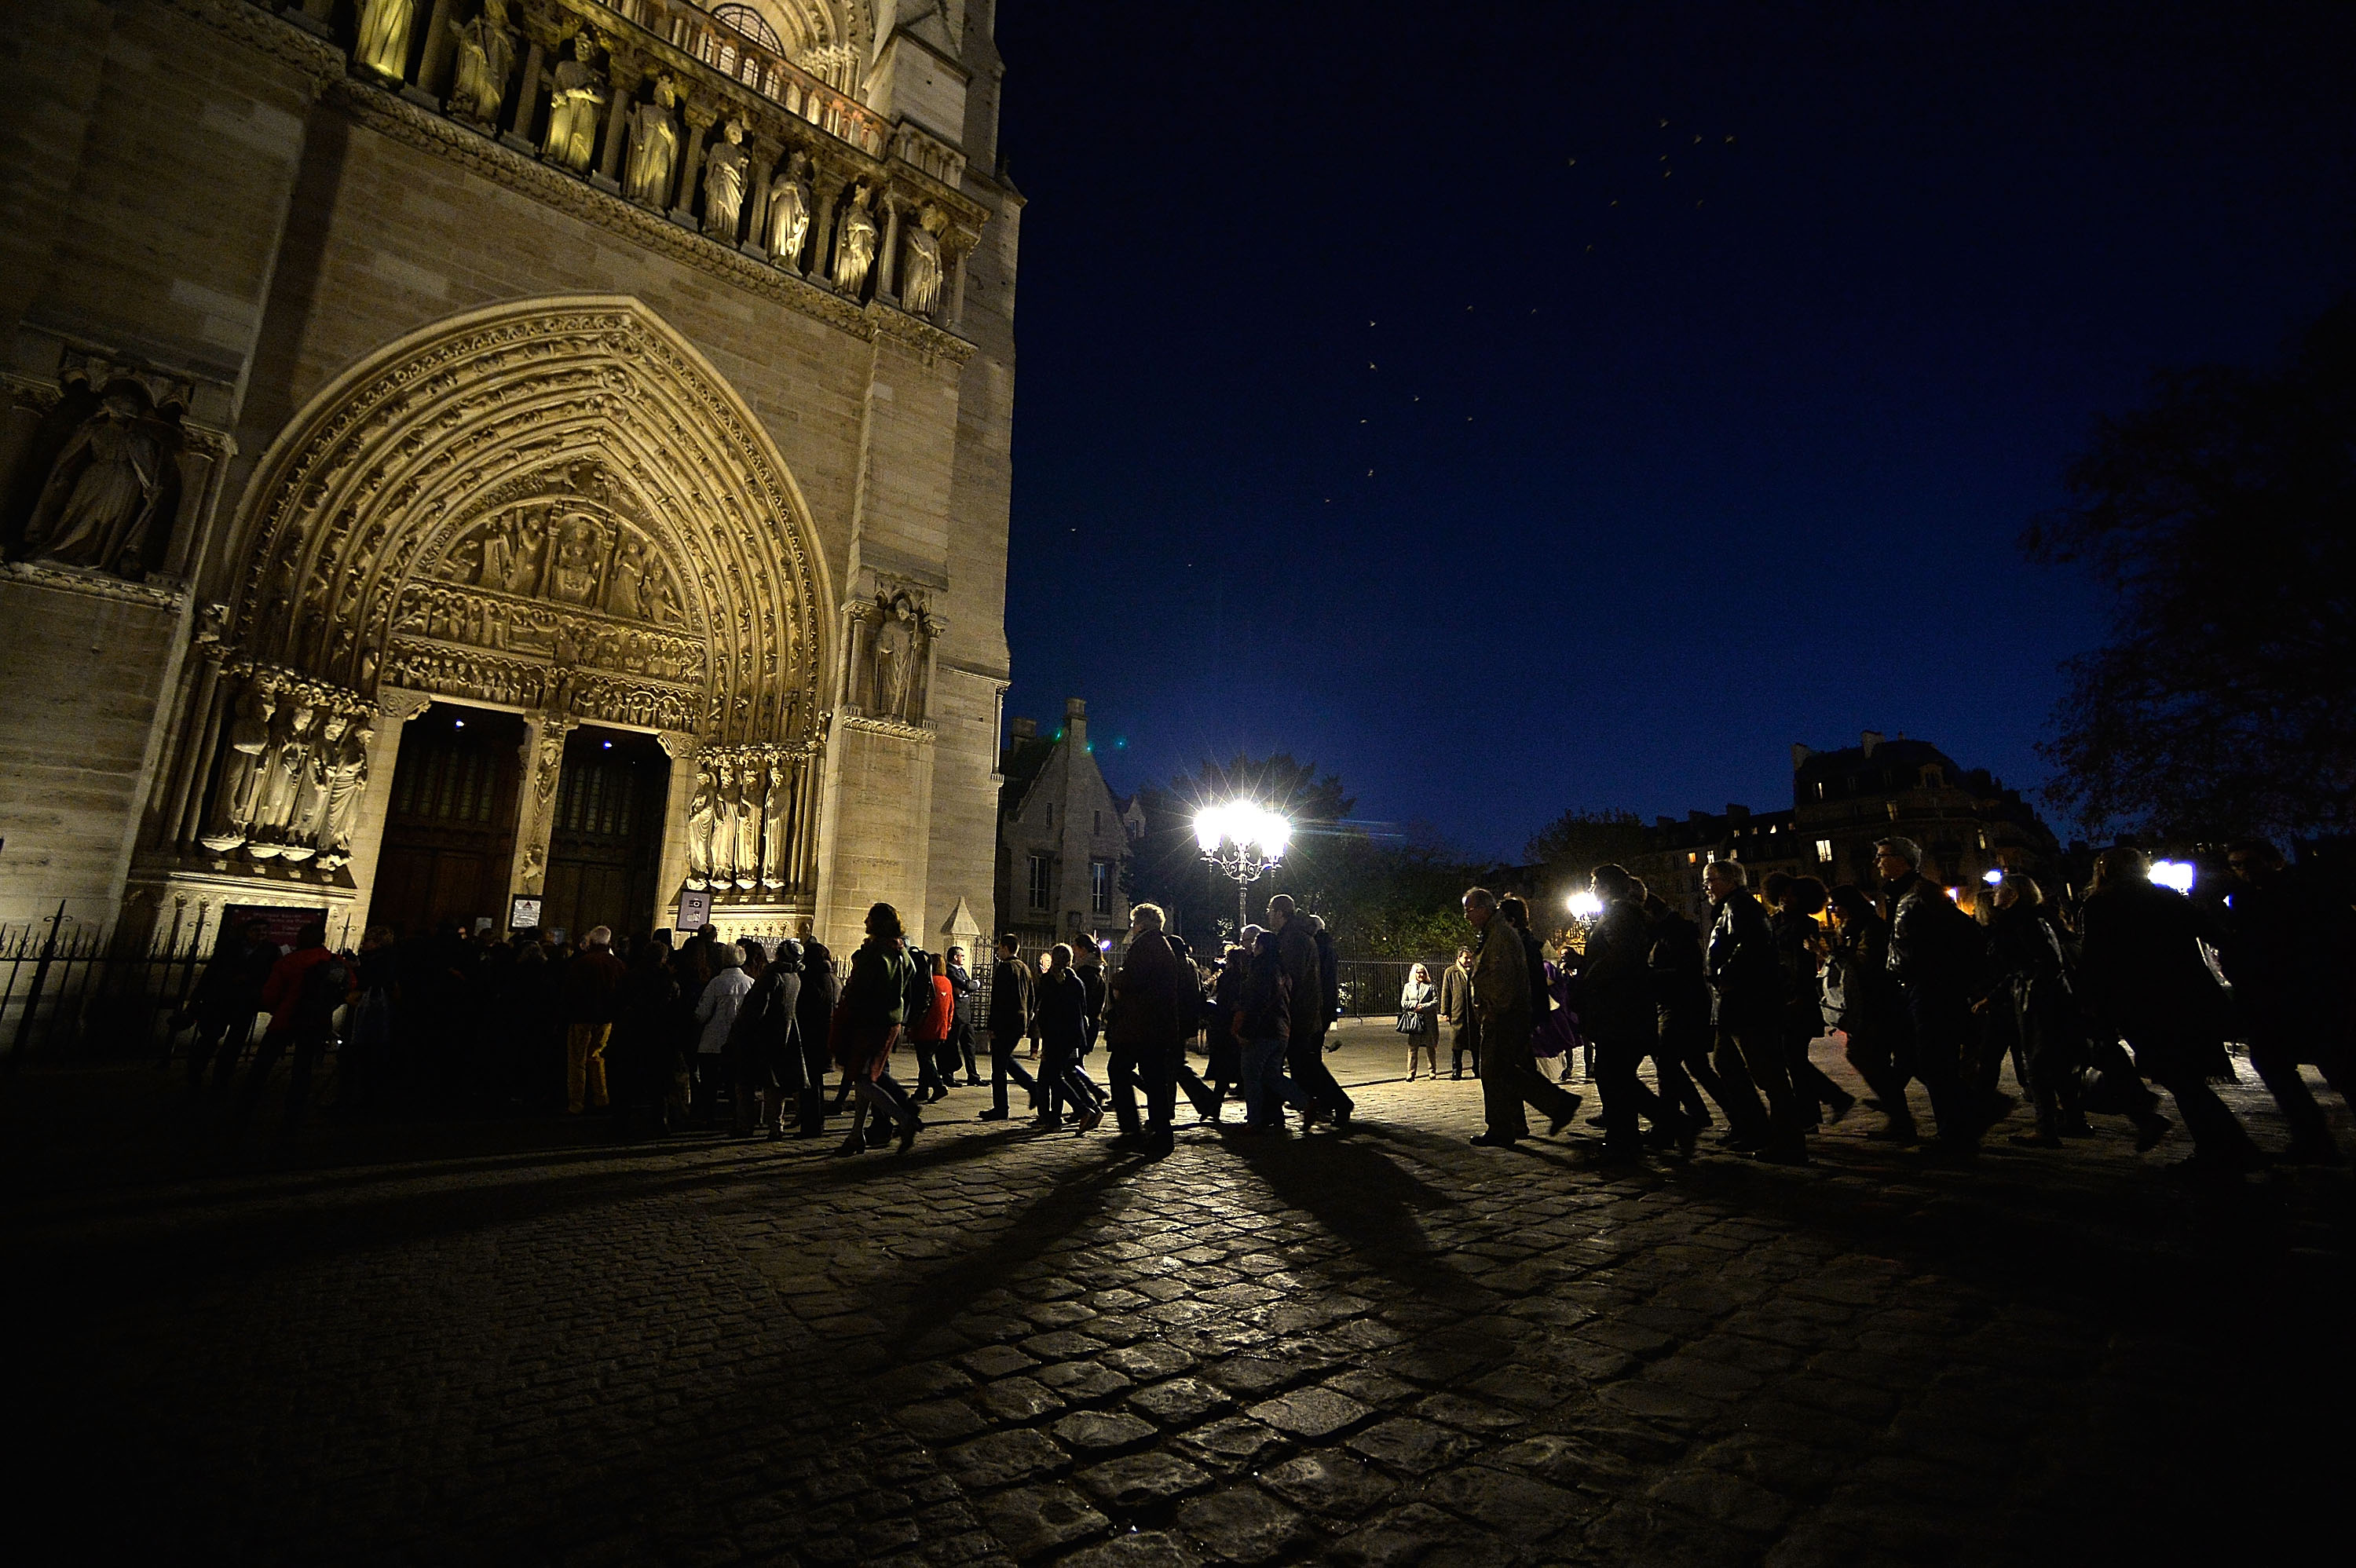 People walk to the Notre Dame Cathedral ahead of a ceremony to the victims of the friday's terrorist attacks on November 15, 2015 in Paris, France. Photo by Pascal Le Segretain/Getty Images